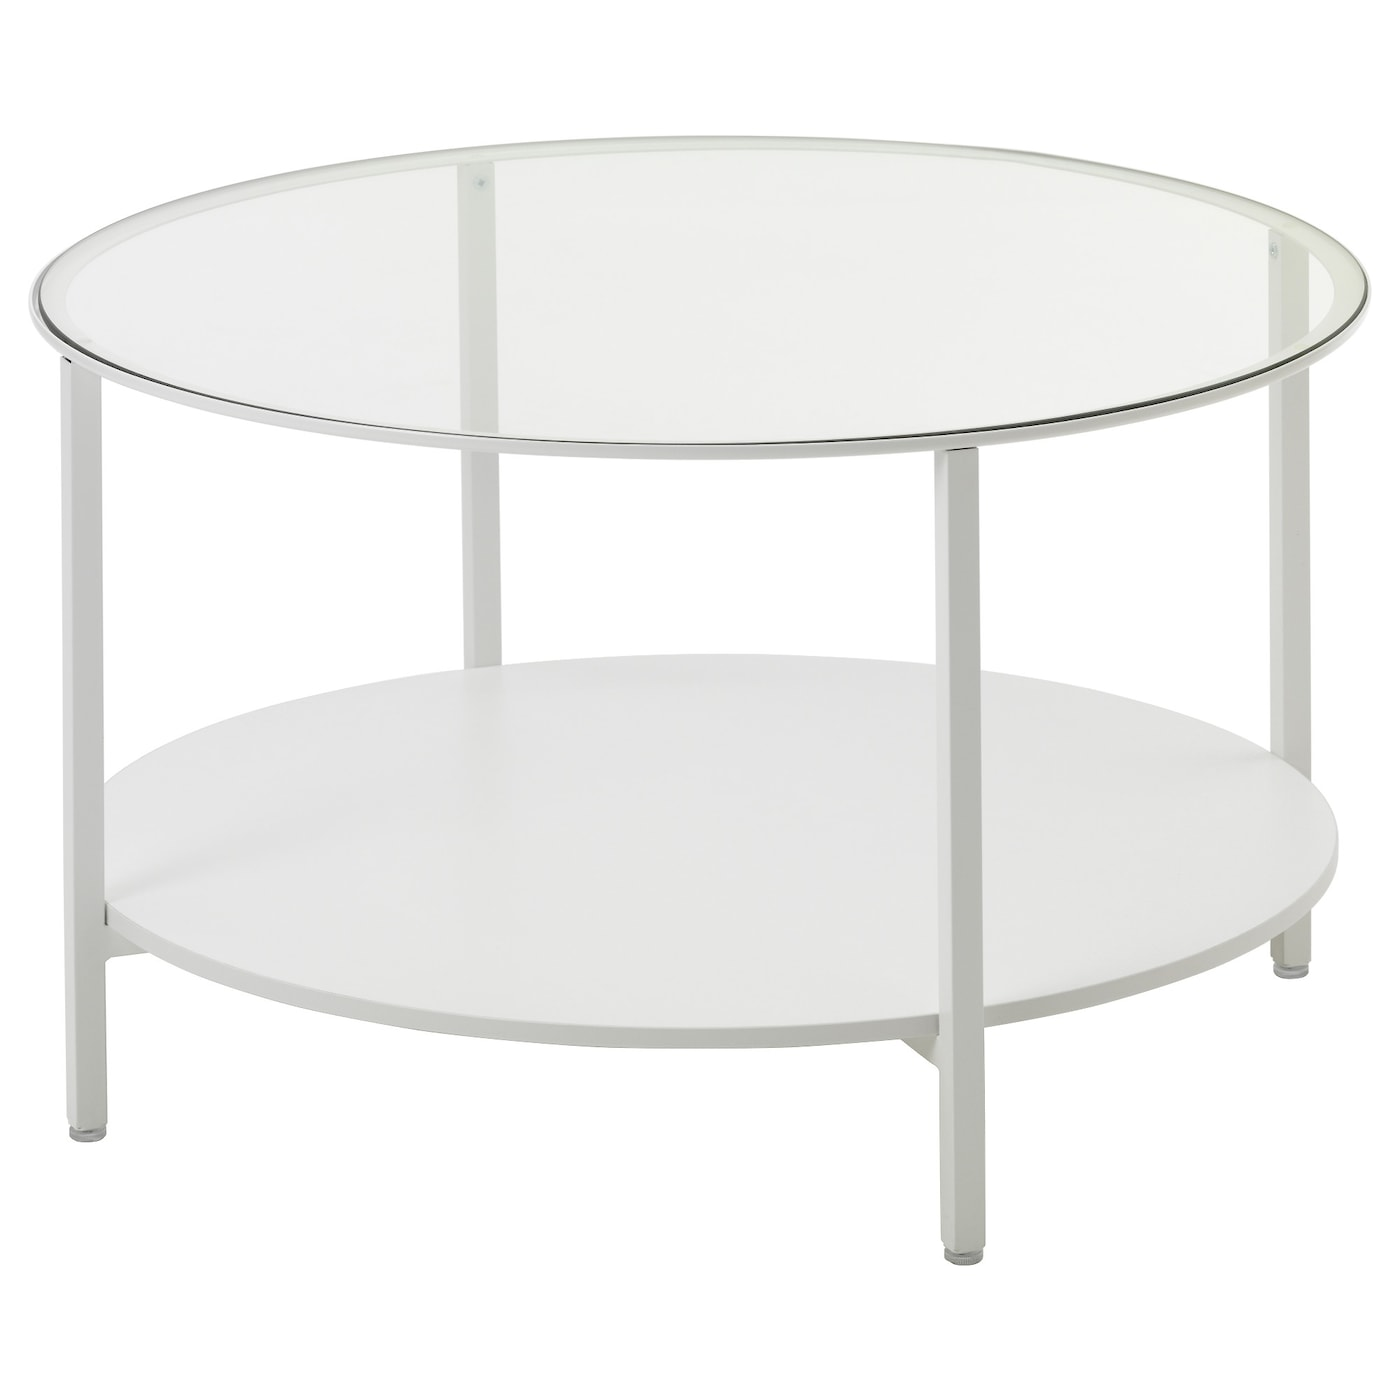 vittsj coffee table white glass 75 cm ikea. Black Bedroom Furniture Sets. Home Design Ideas